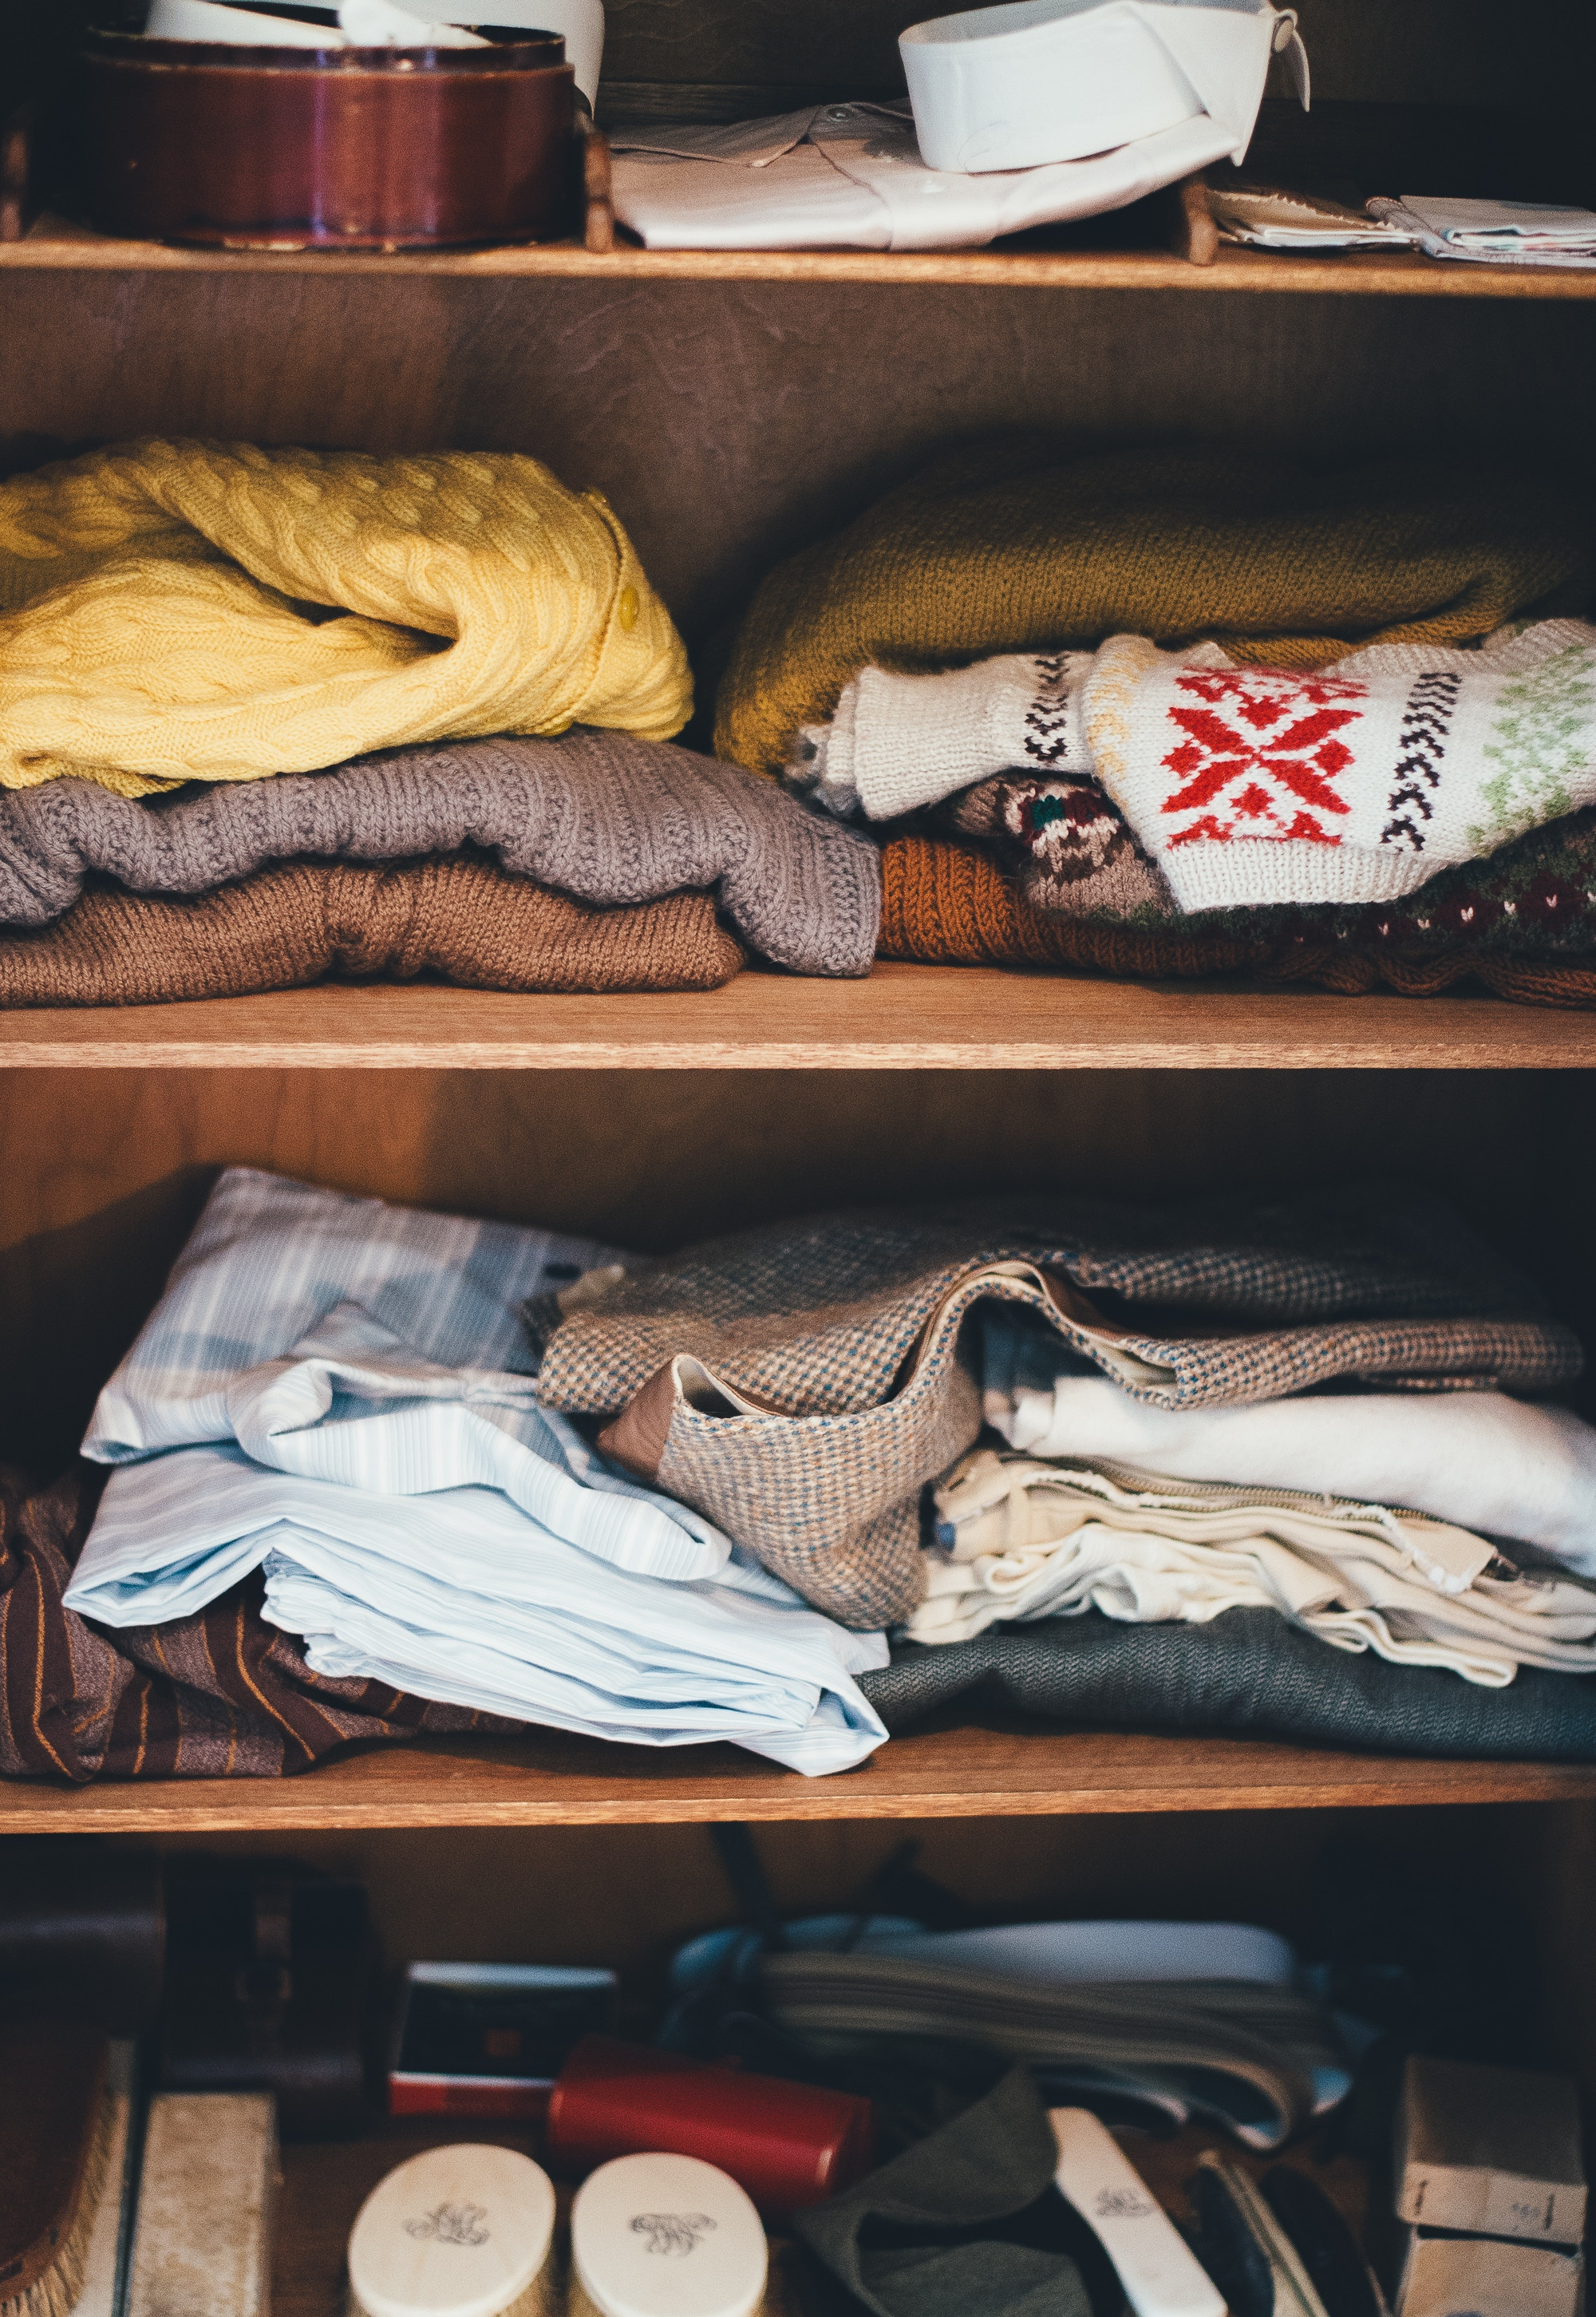 Storing Clothes to Last: How to Store Your Seasonal Items